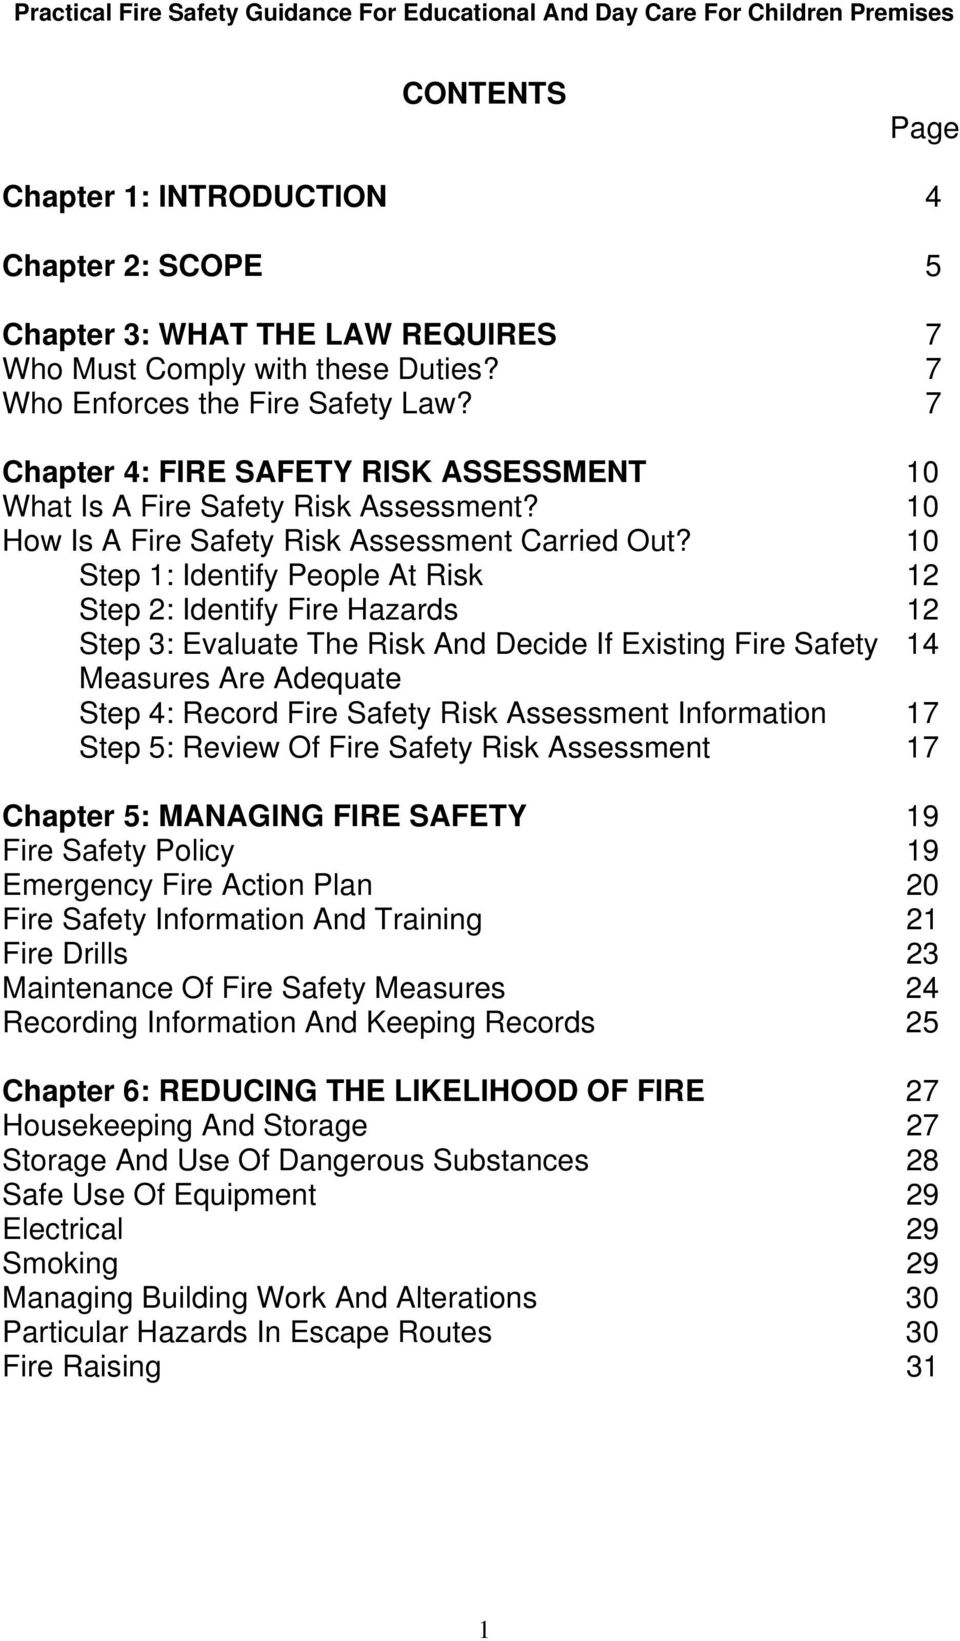 10 Step 1: Identify People At Risk 12 Step 2: Identify Fire Hazards 12 Step 3: Evaluate The Risk And Decide If Existing Fire Safety 14 Measures Are Adequate Step 4: Record Fire Safety Risk Assessment